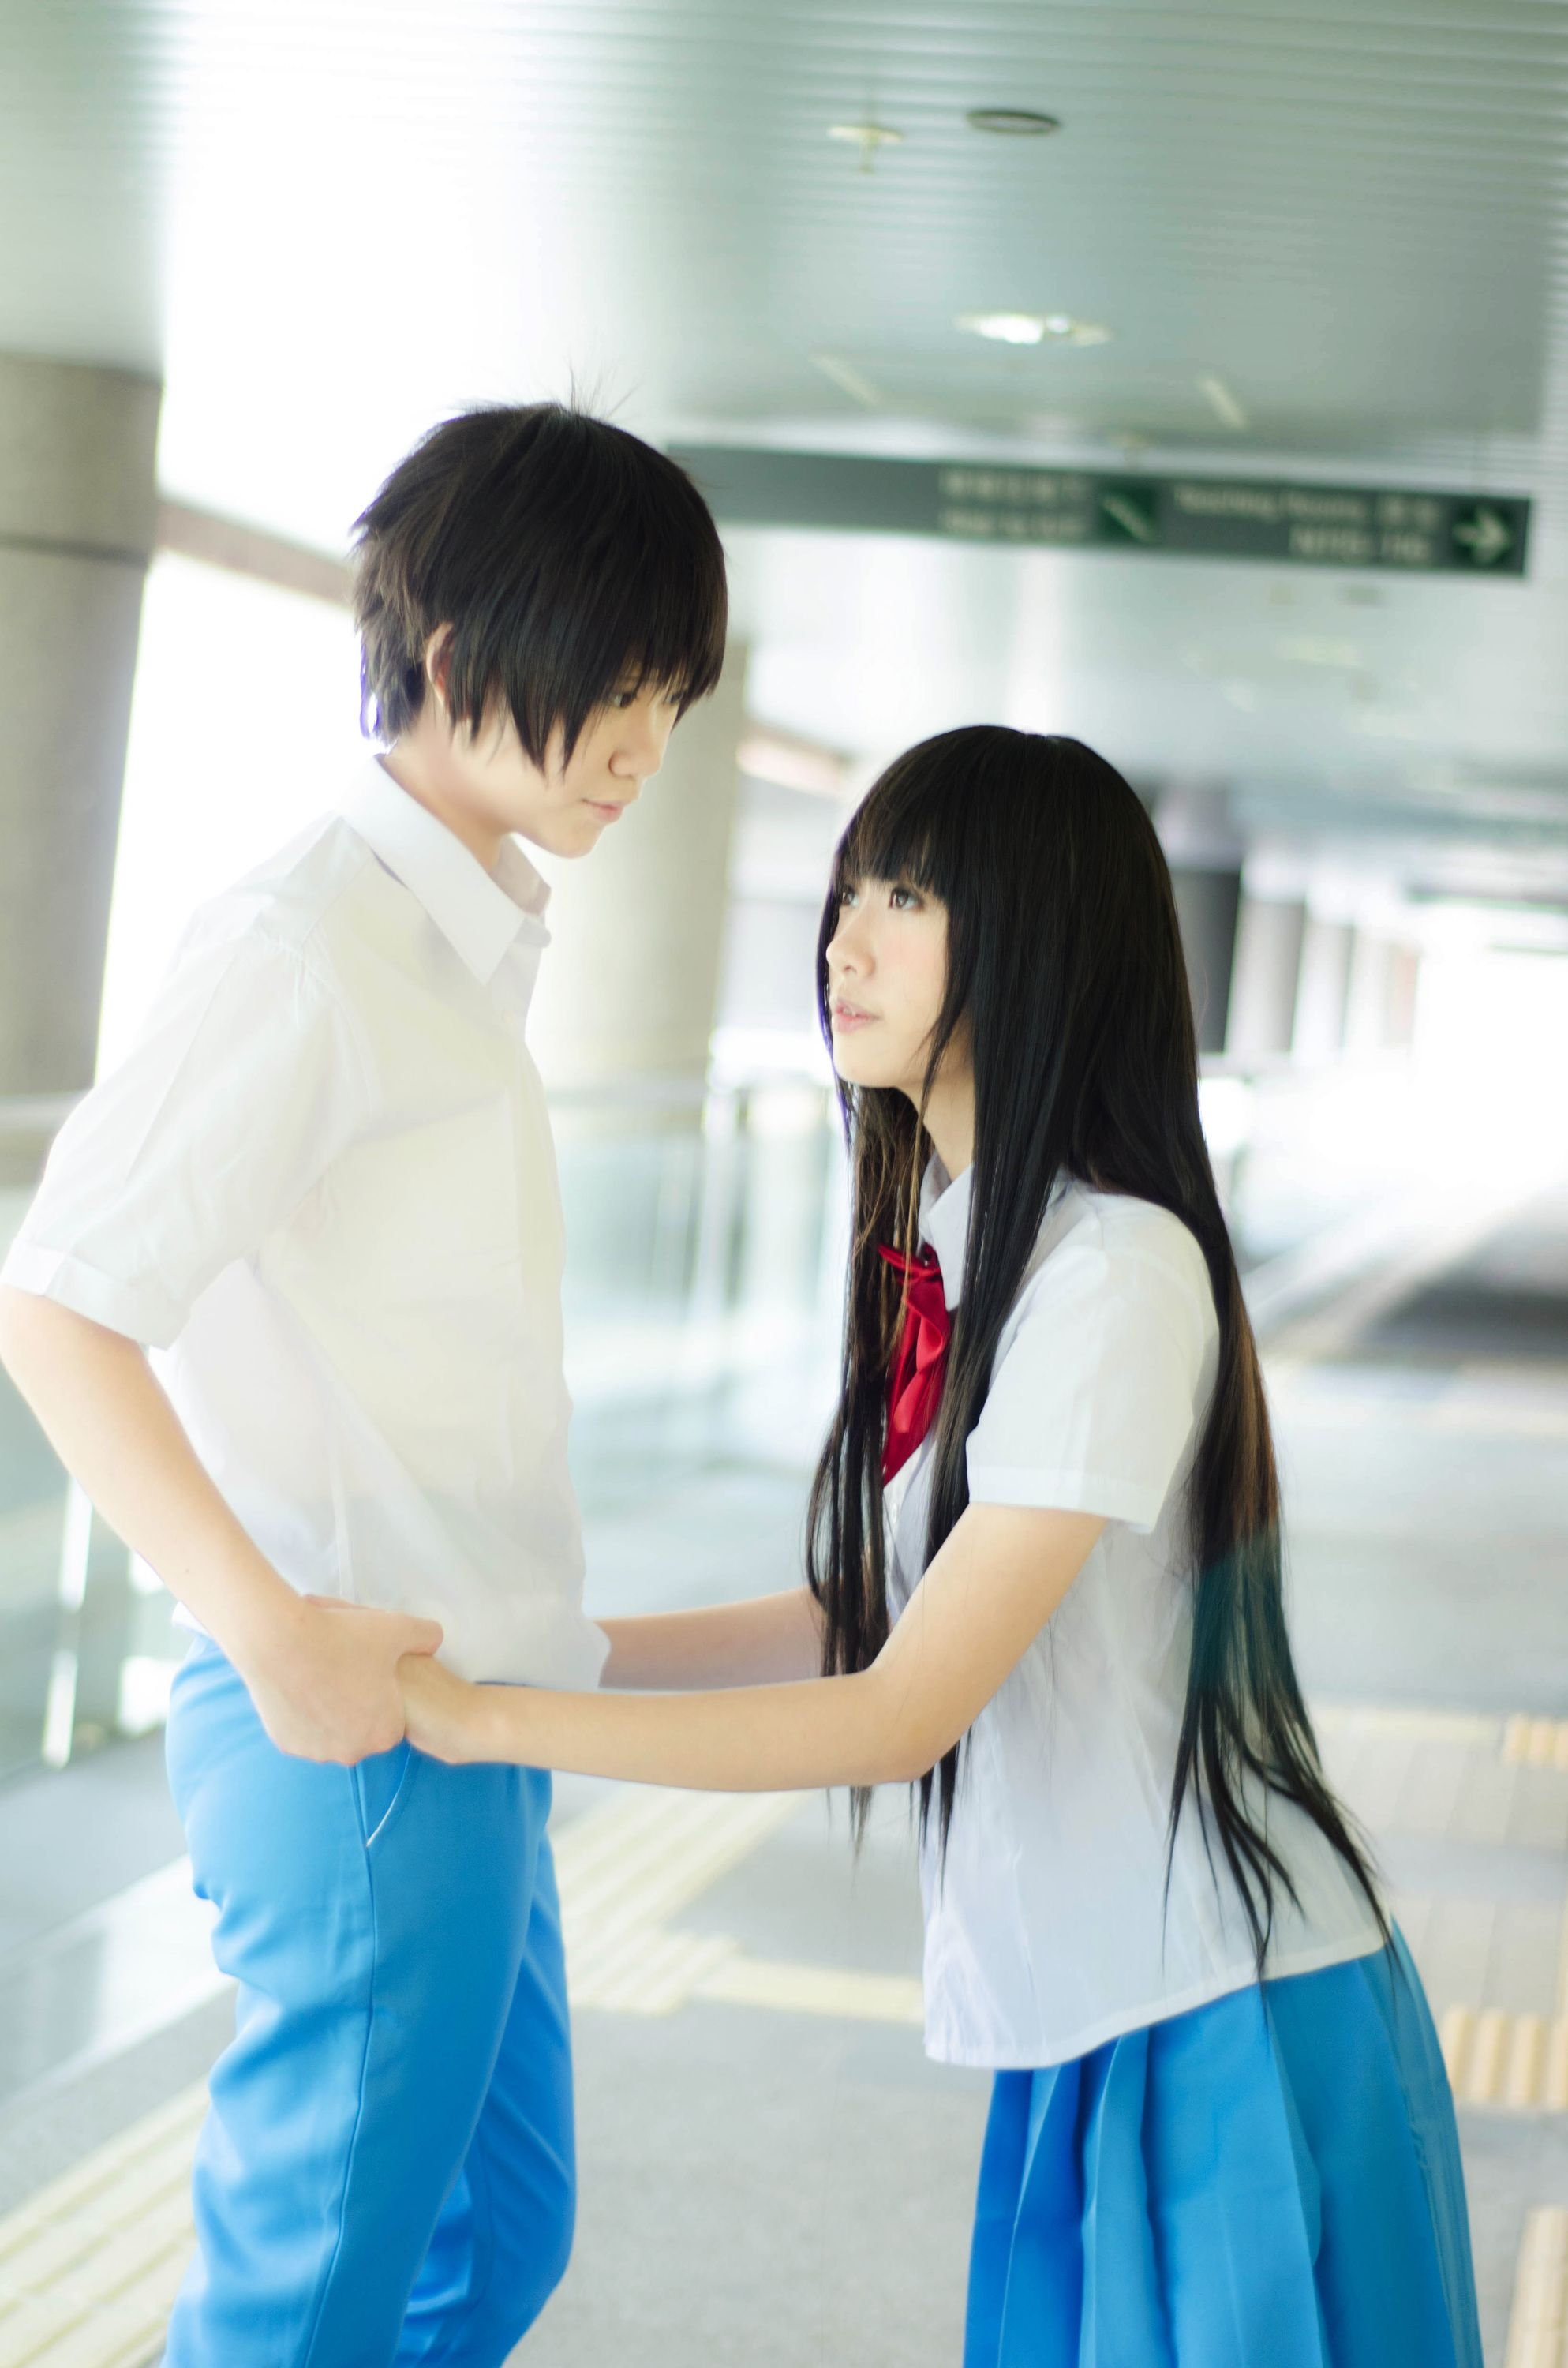 Nanananana Sawako Kuronuma, Shota Kazehaya Cosplay Photo - Cure WorldCosplay